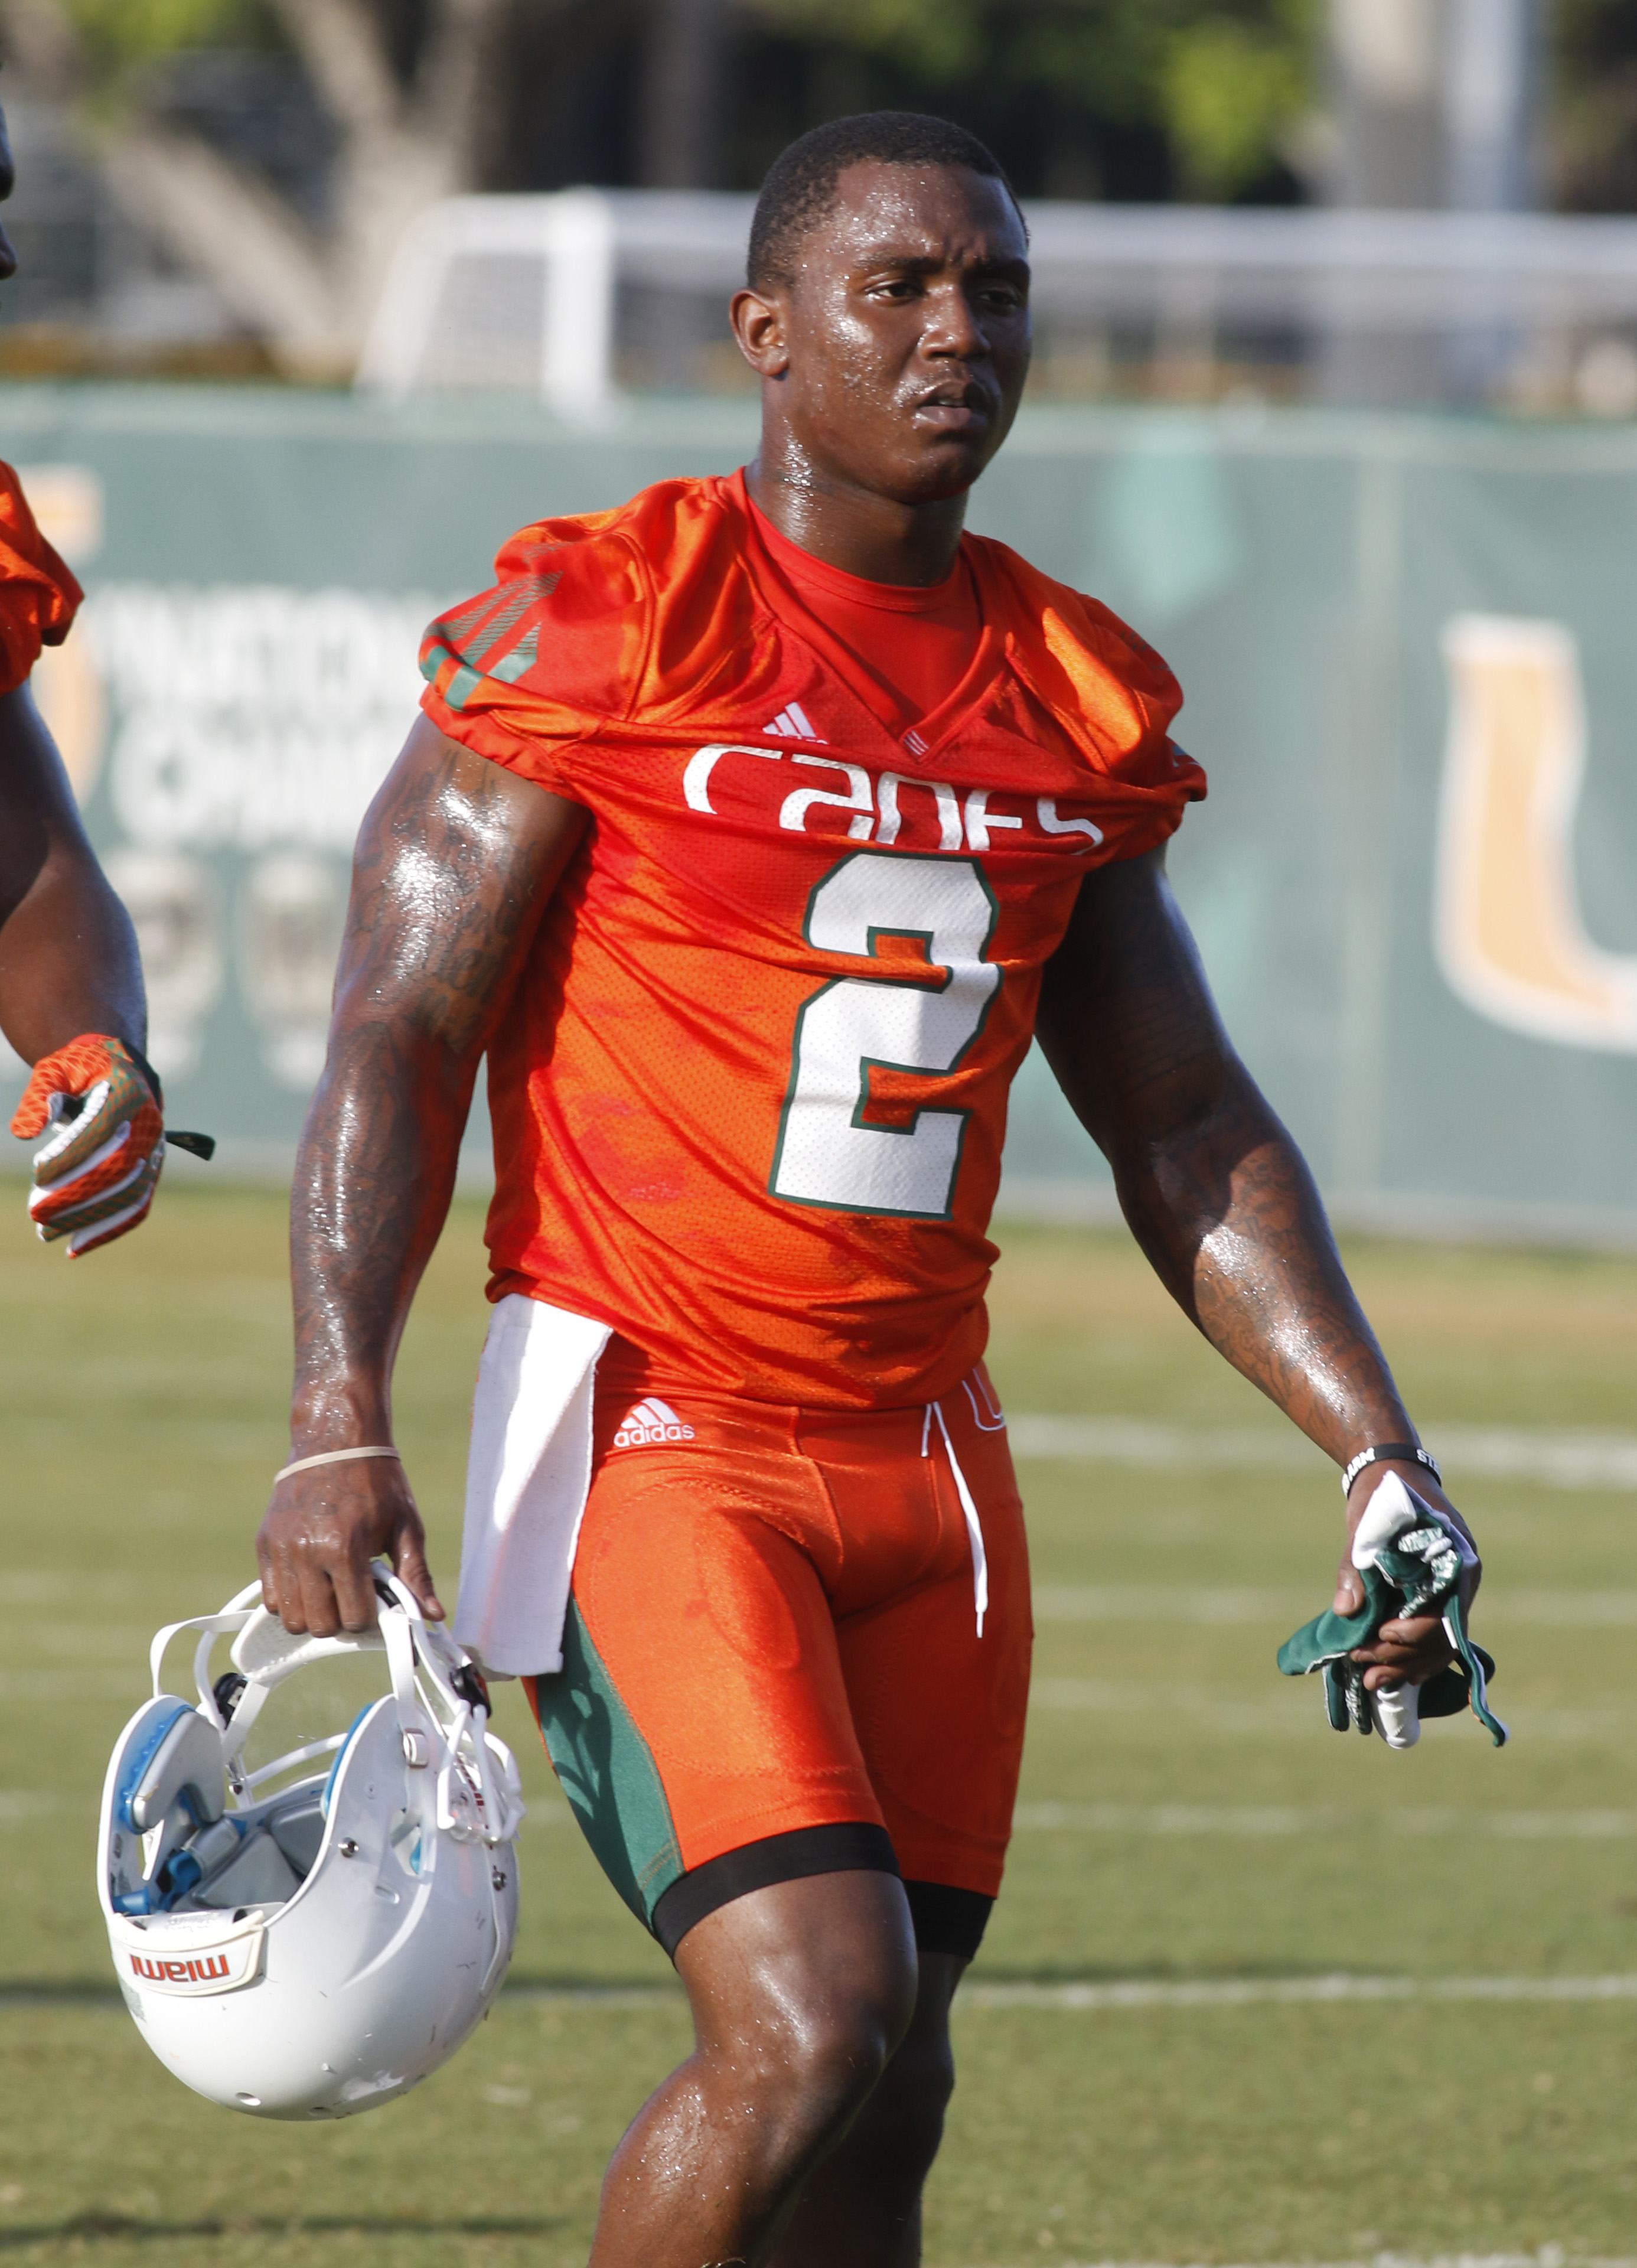 Miami running back Joseph Yearby walks on the field during the team's NCAA college football practice, Friday, Aug. 7, 2015, in Coral Gables, Fla. The team is not bothered by a national perception that they will struggle this season. (AP Photo/Joe Skipper)